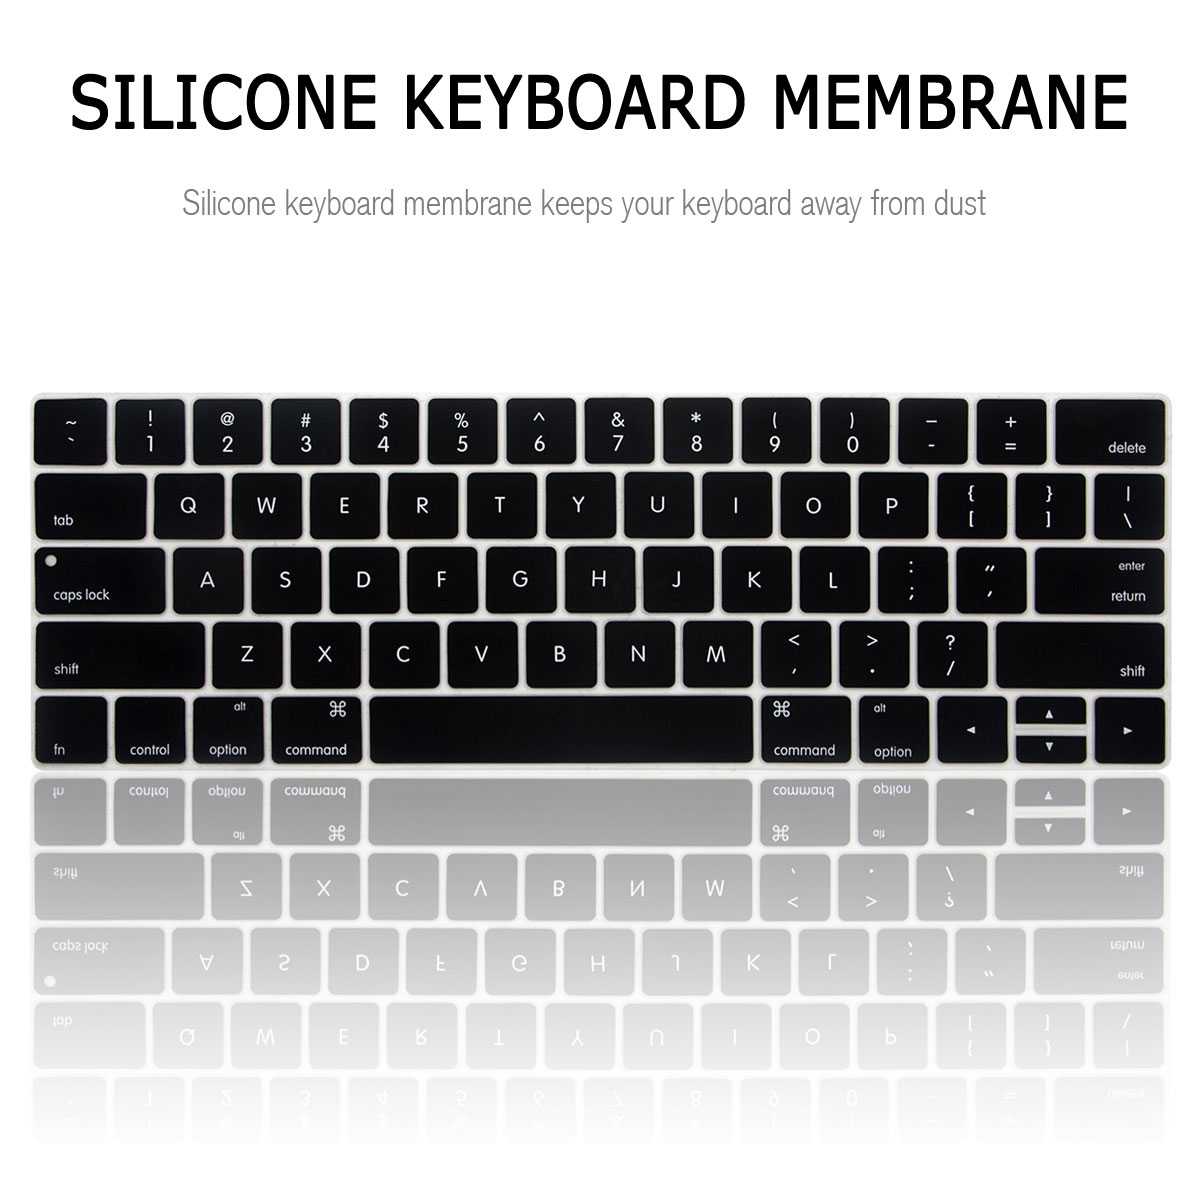 Shockproof-Laptop-Hard-Case-Keyboard-Cover-For-Macbook-Air-13-034-Inch-2018-A1932 thumbnail 18